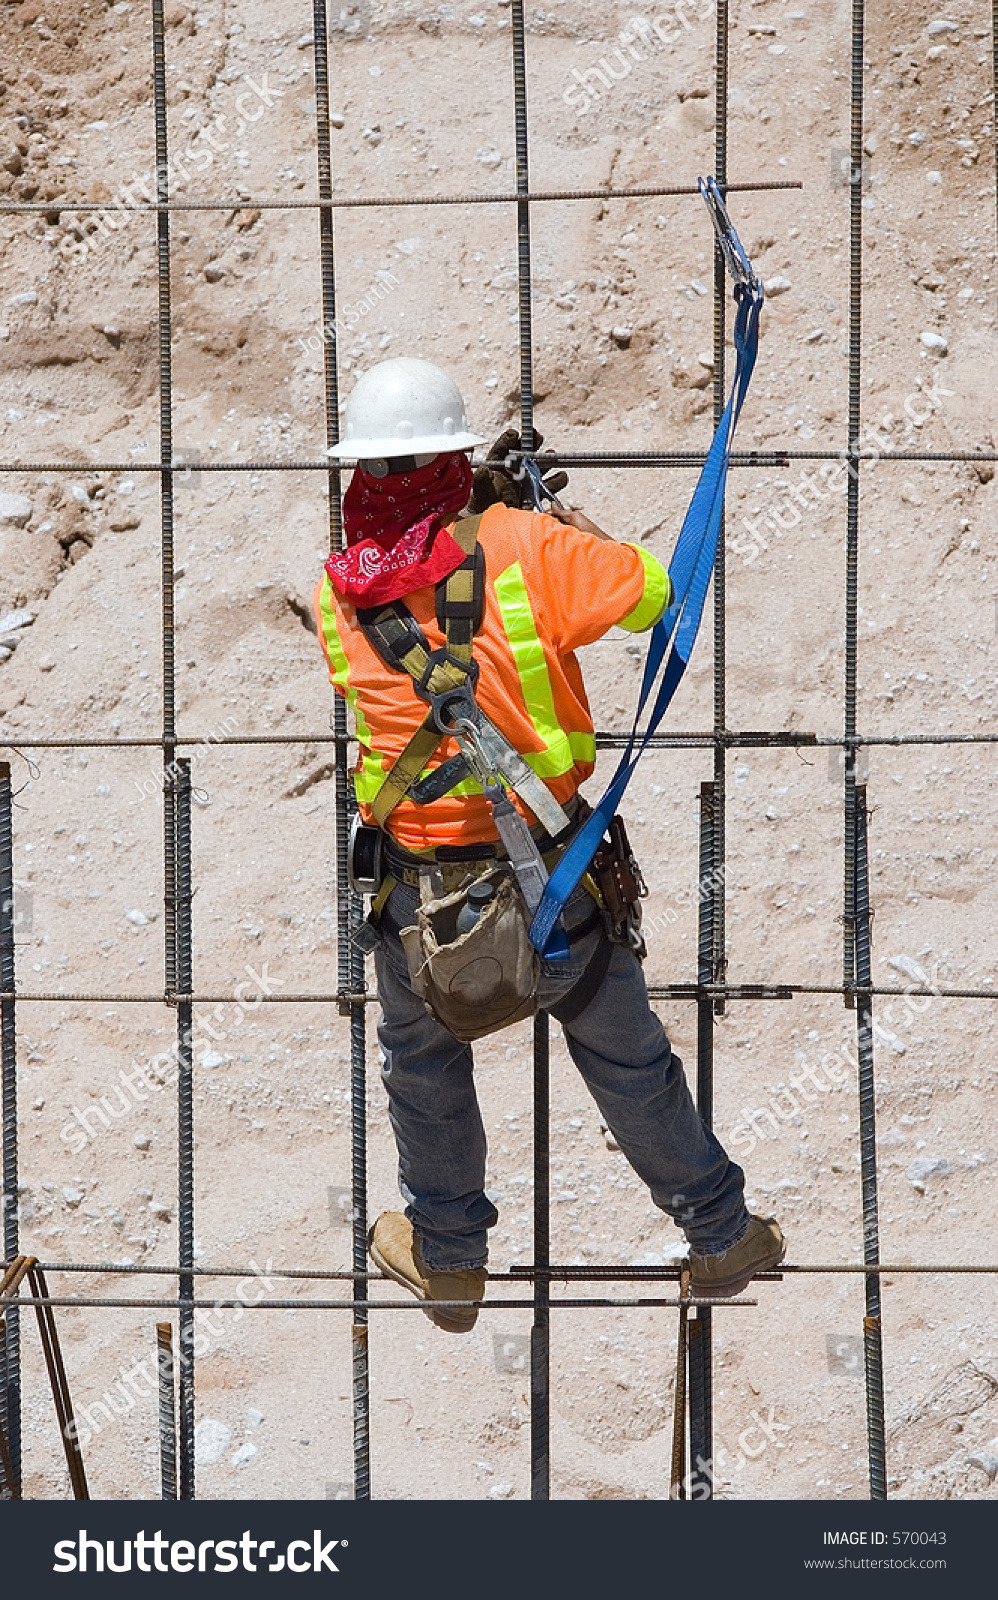 save to a lightbox rebar worker